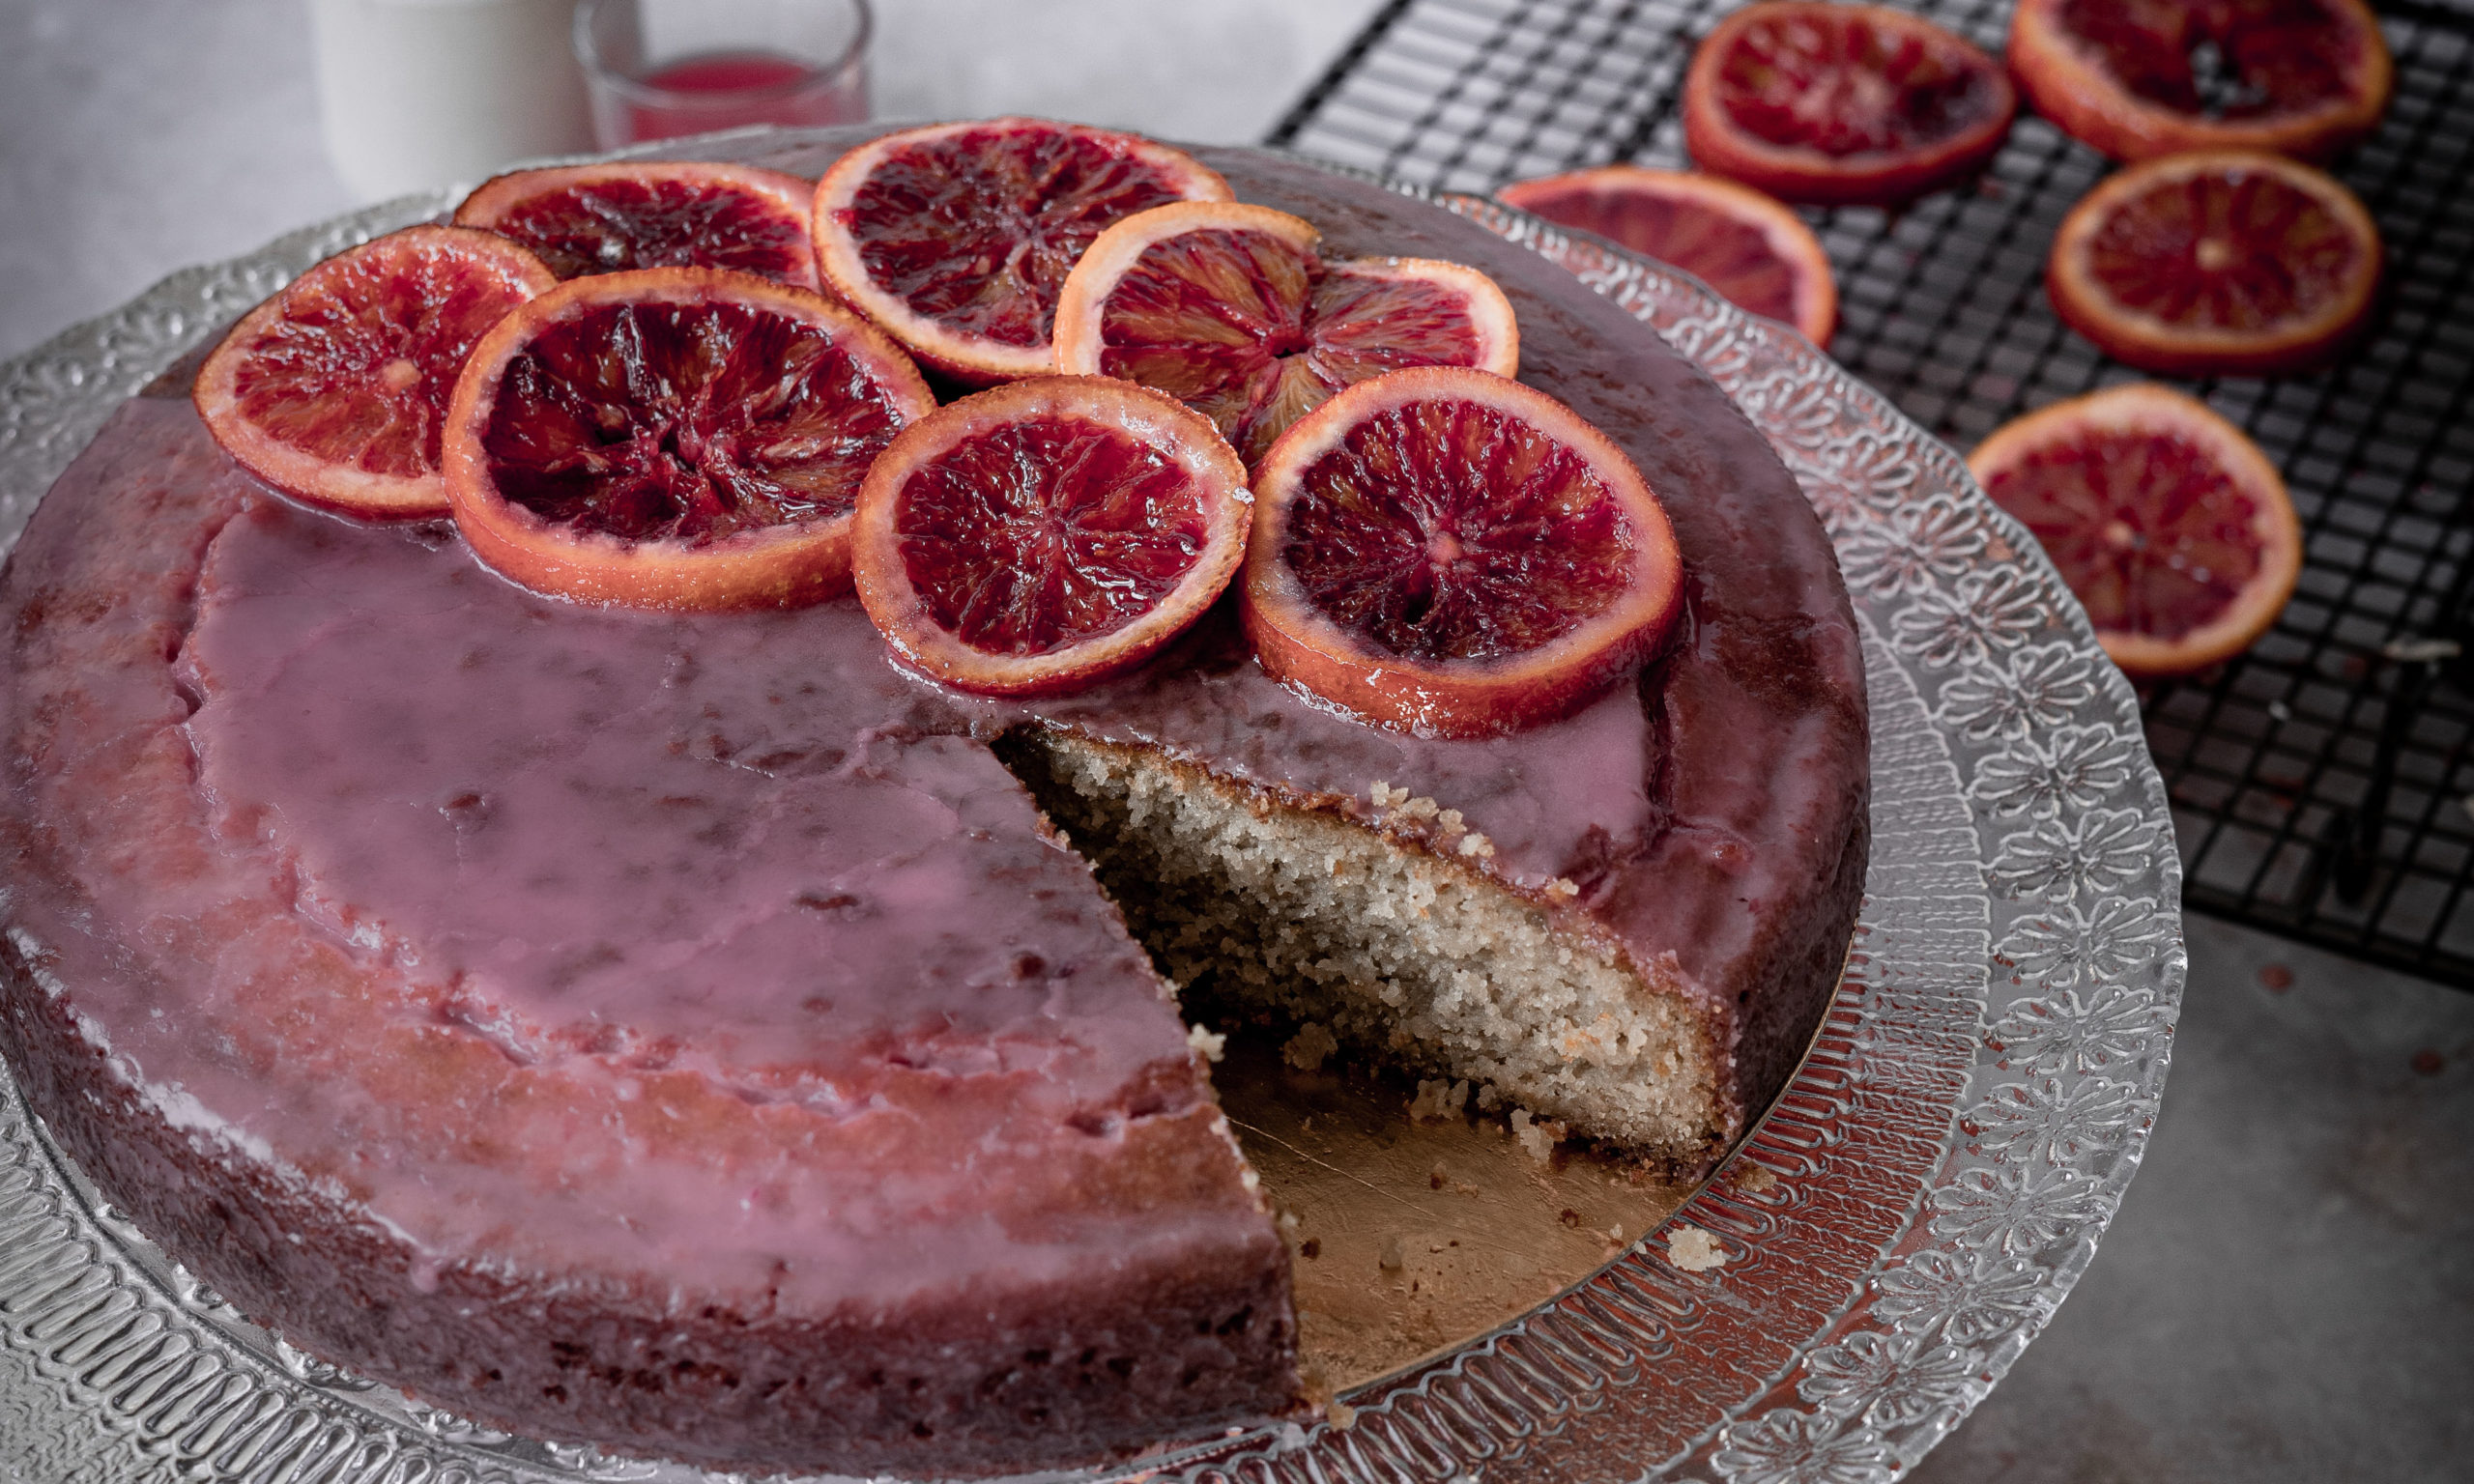 orange blood cake